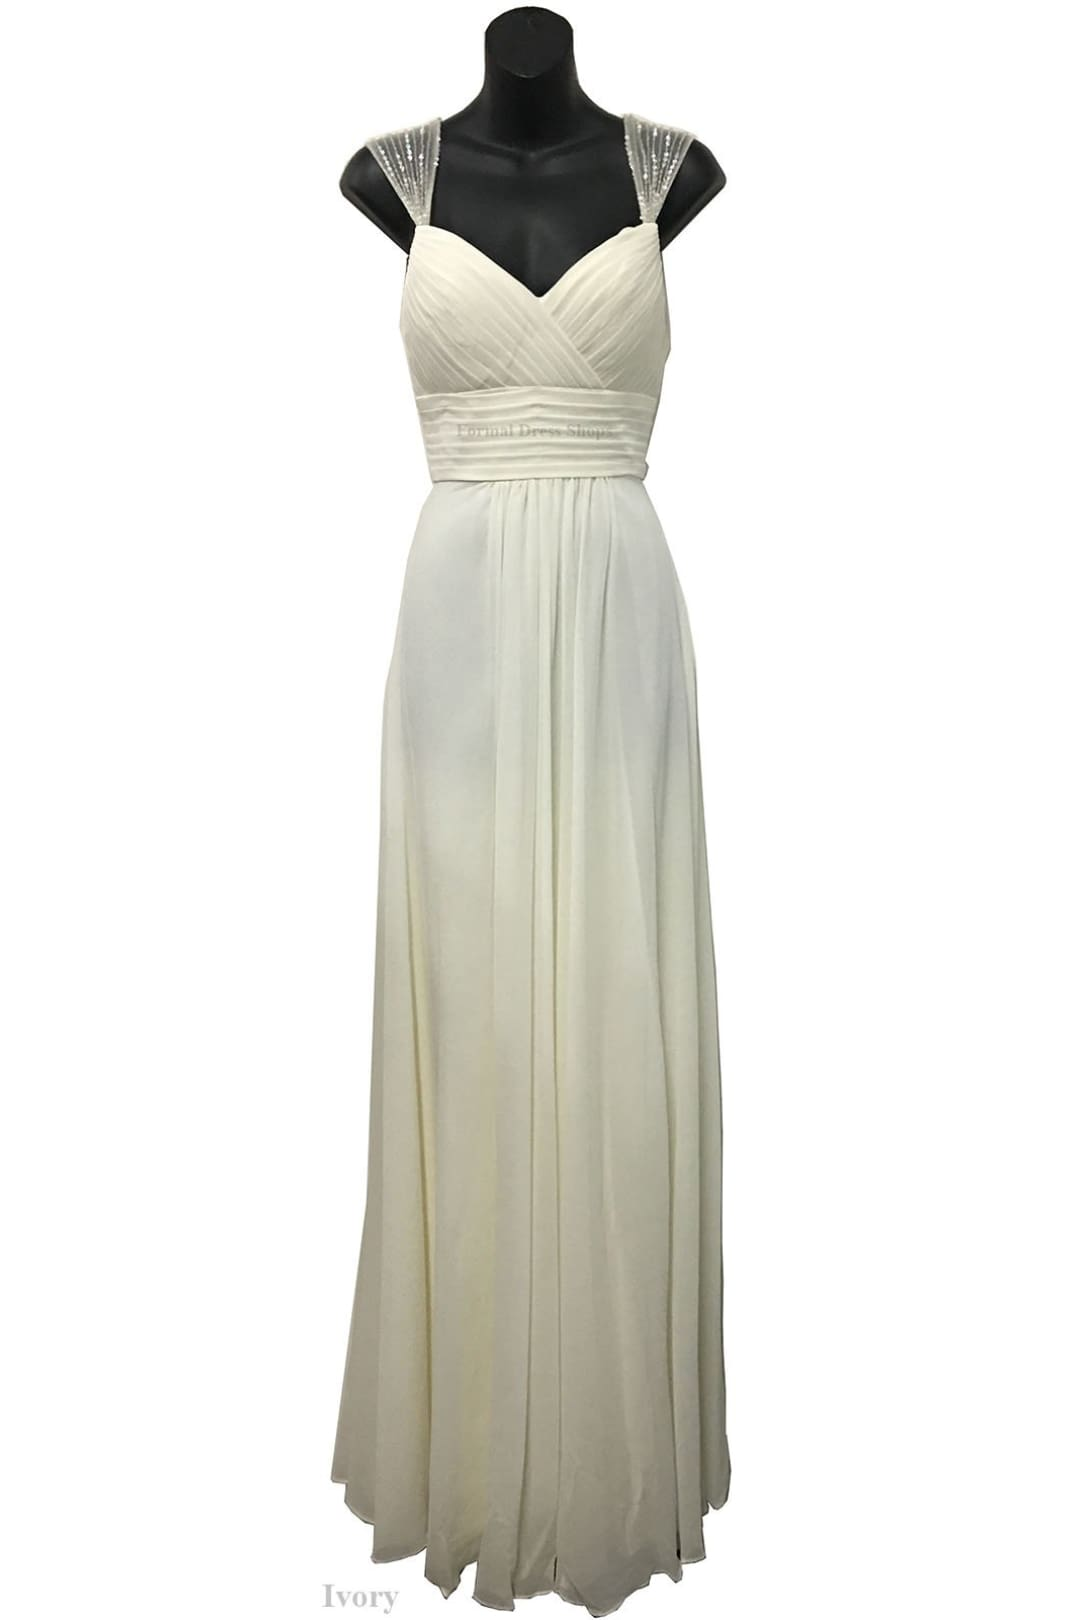 Classy Long Bridal Evening Gown - IVORY / 4